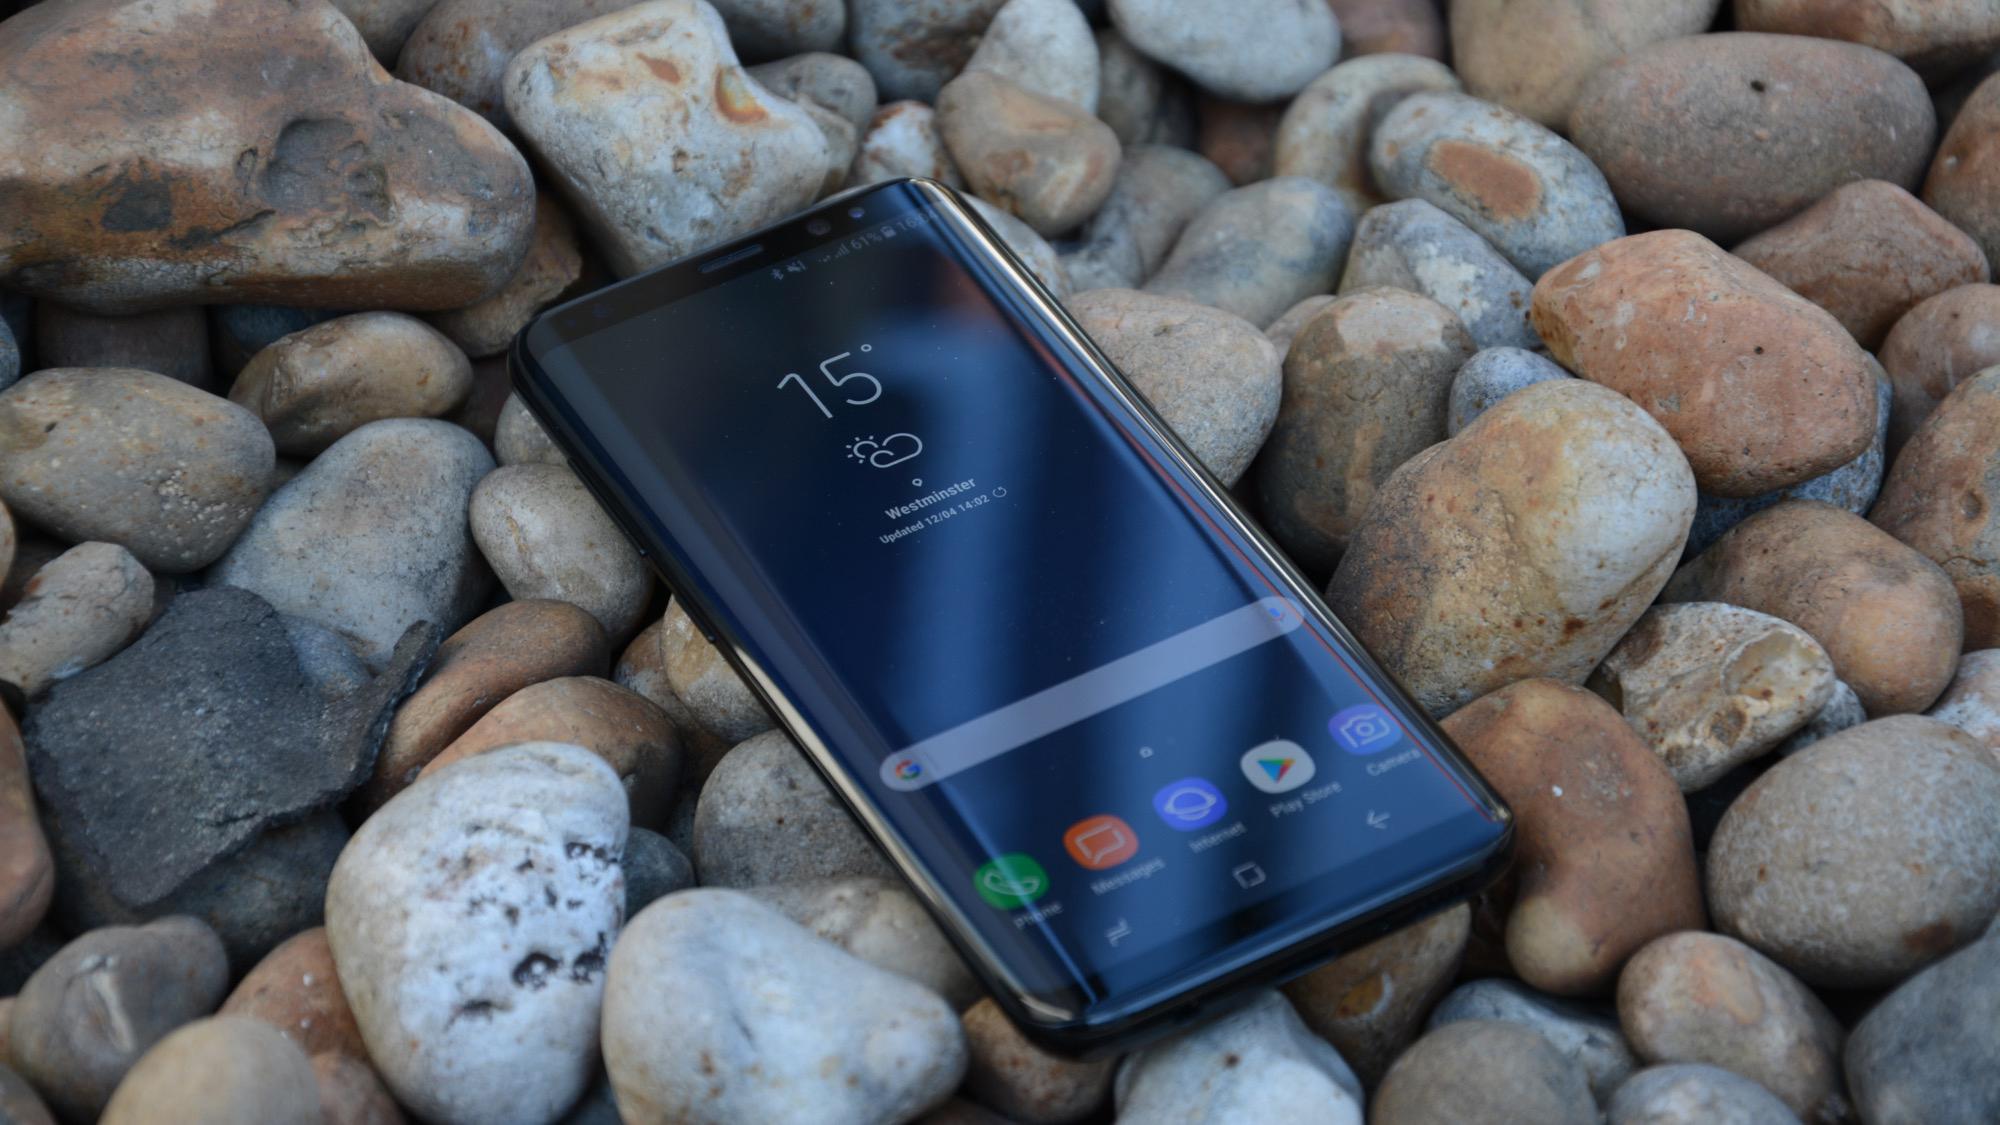 Samsung Galaxy S8 review pebbels